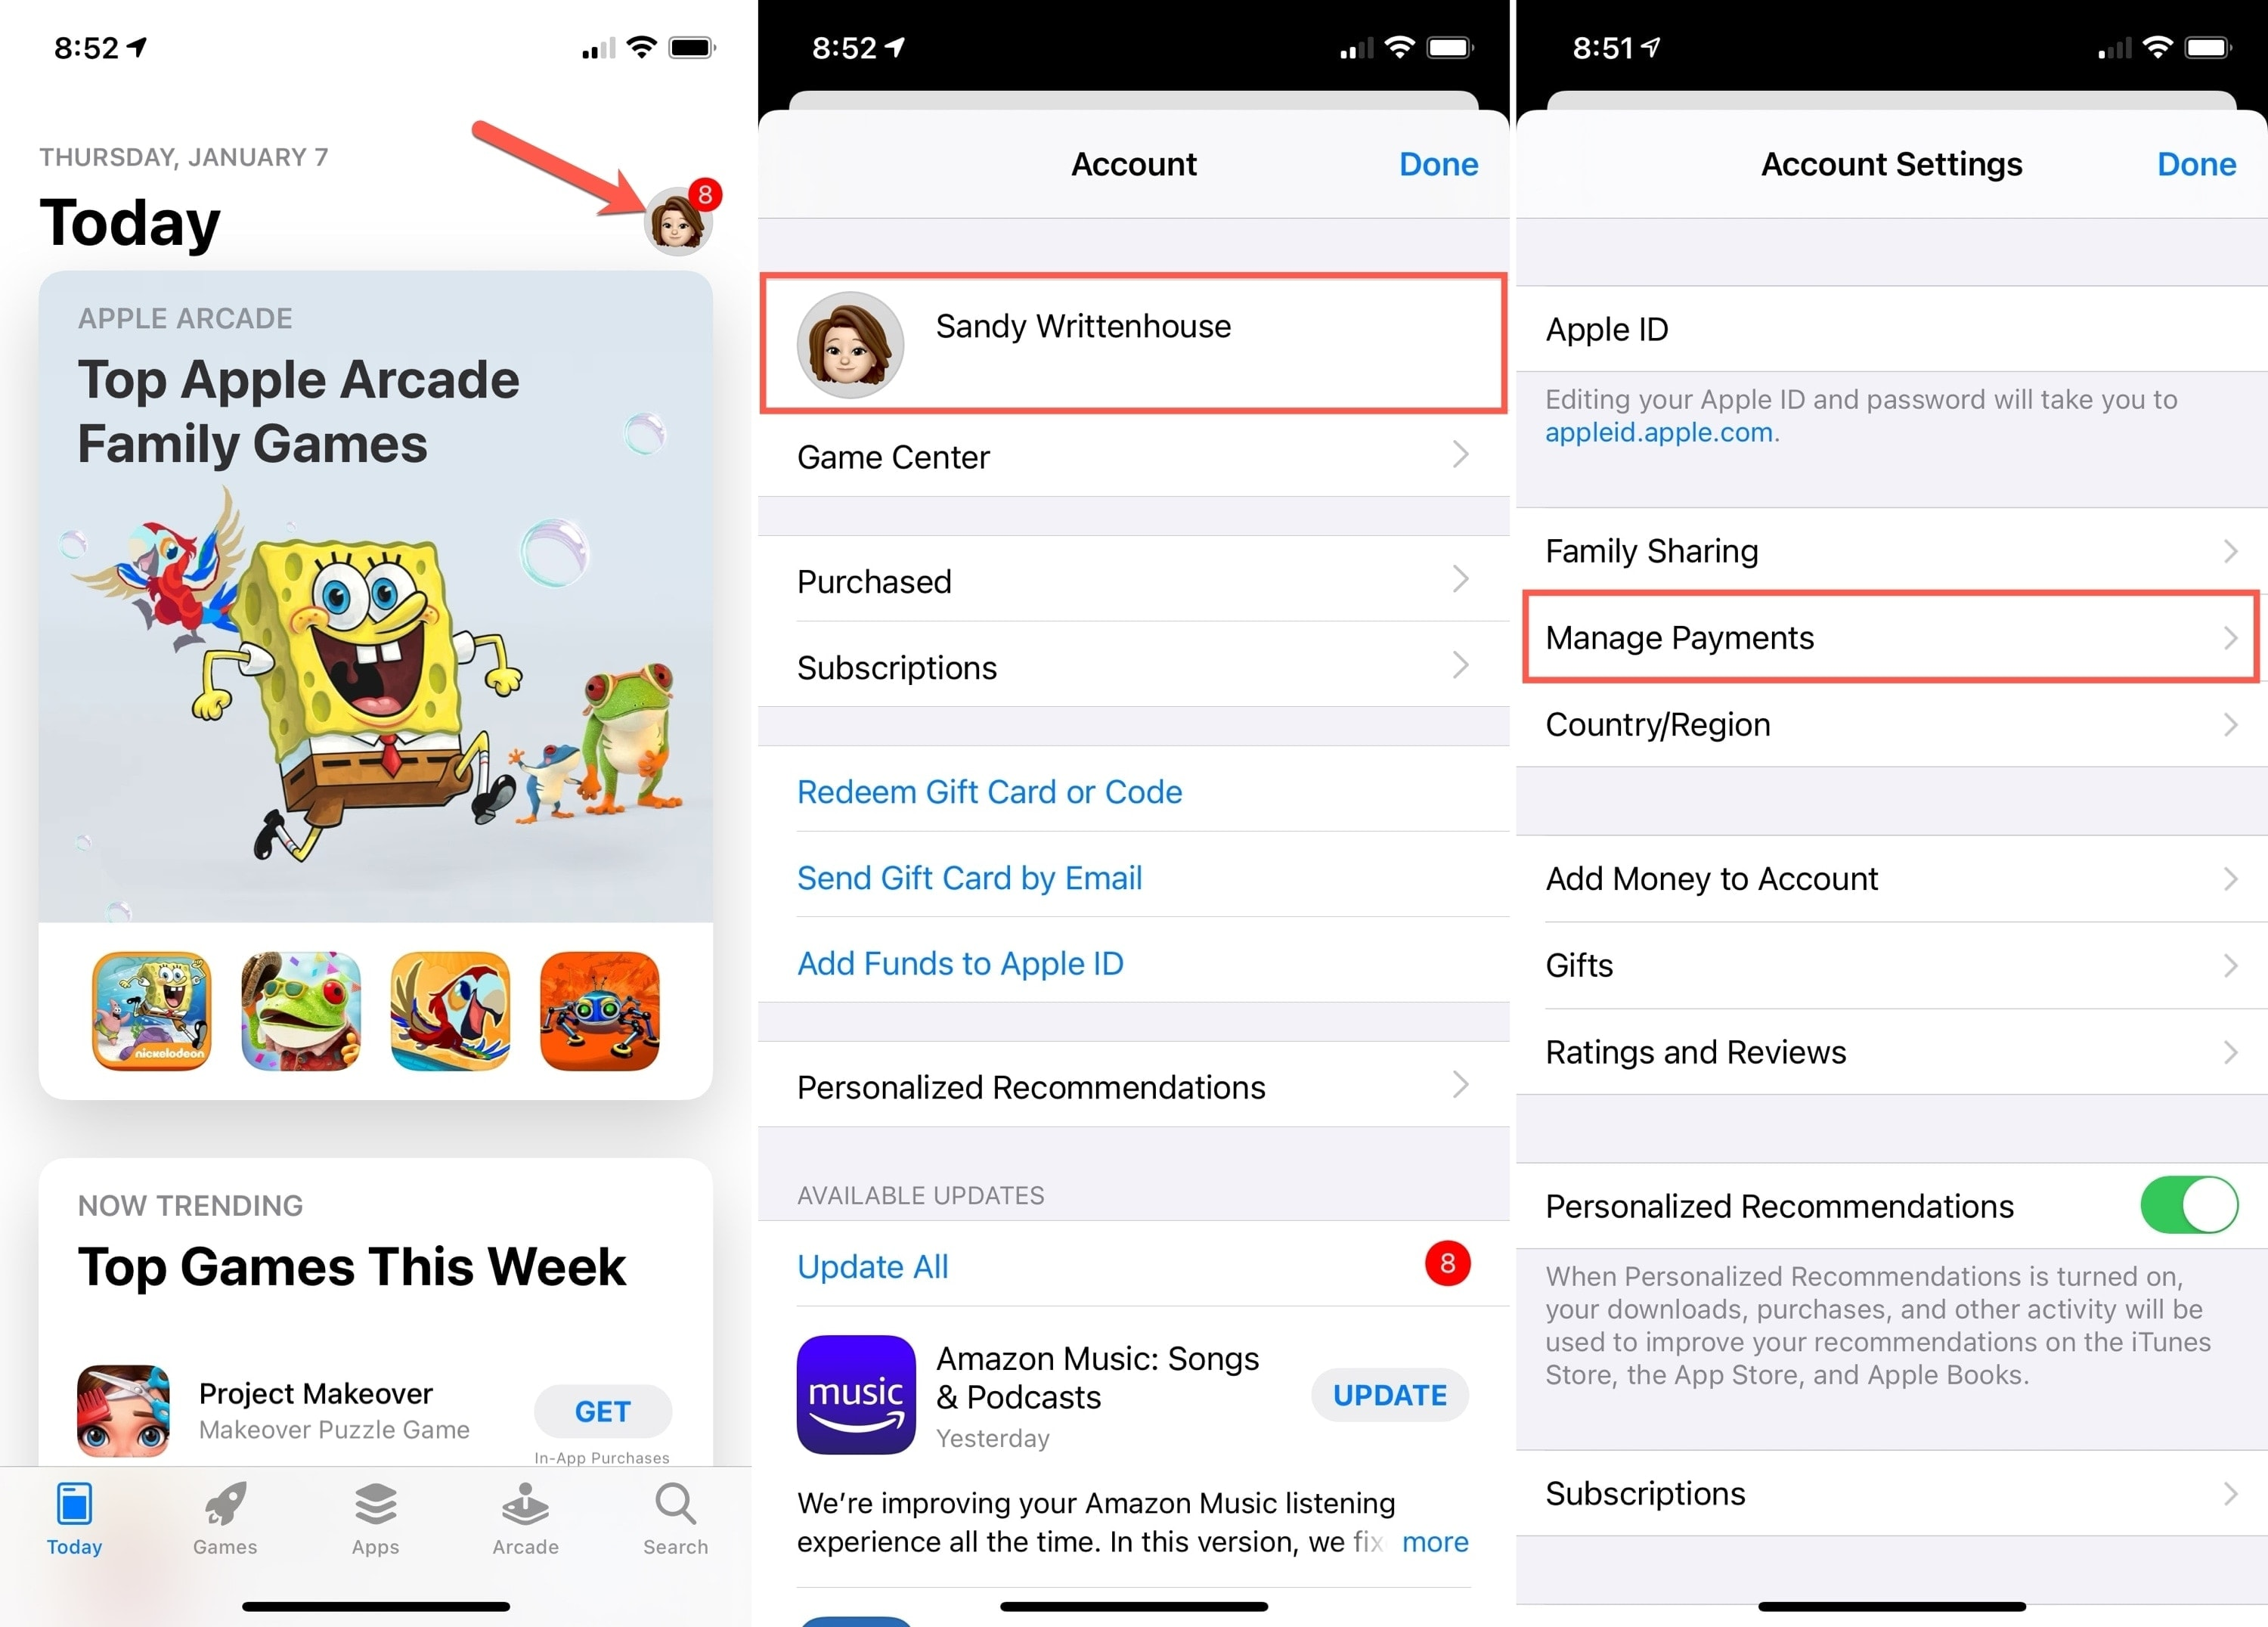 Manage Payments in App Store on iPhone